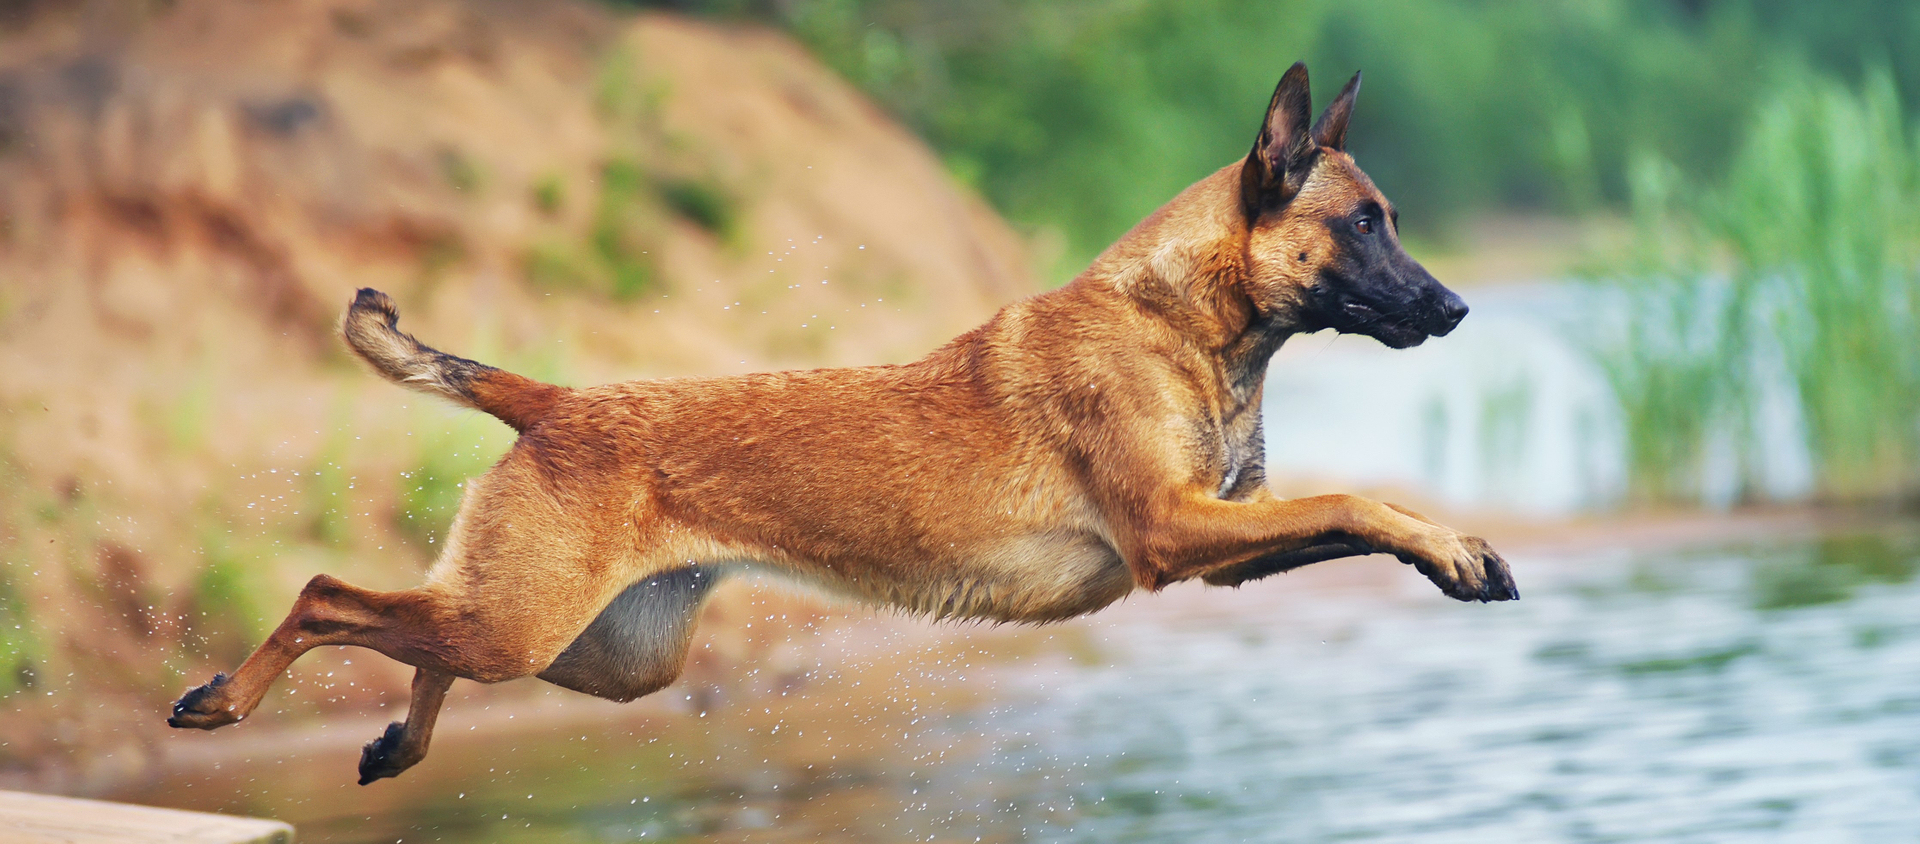 A Belgian Malinois takes a dip in a pond.